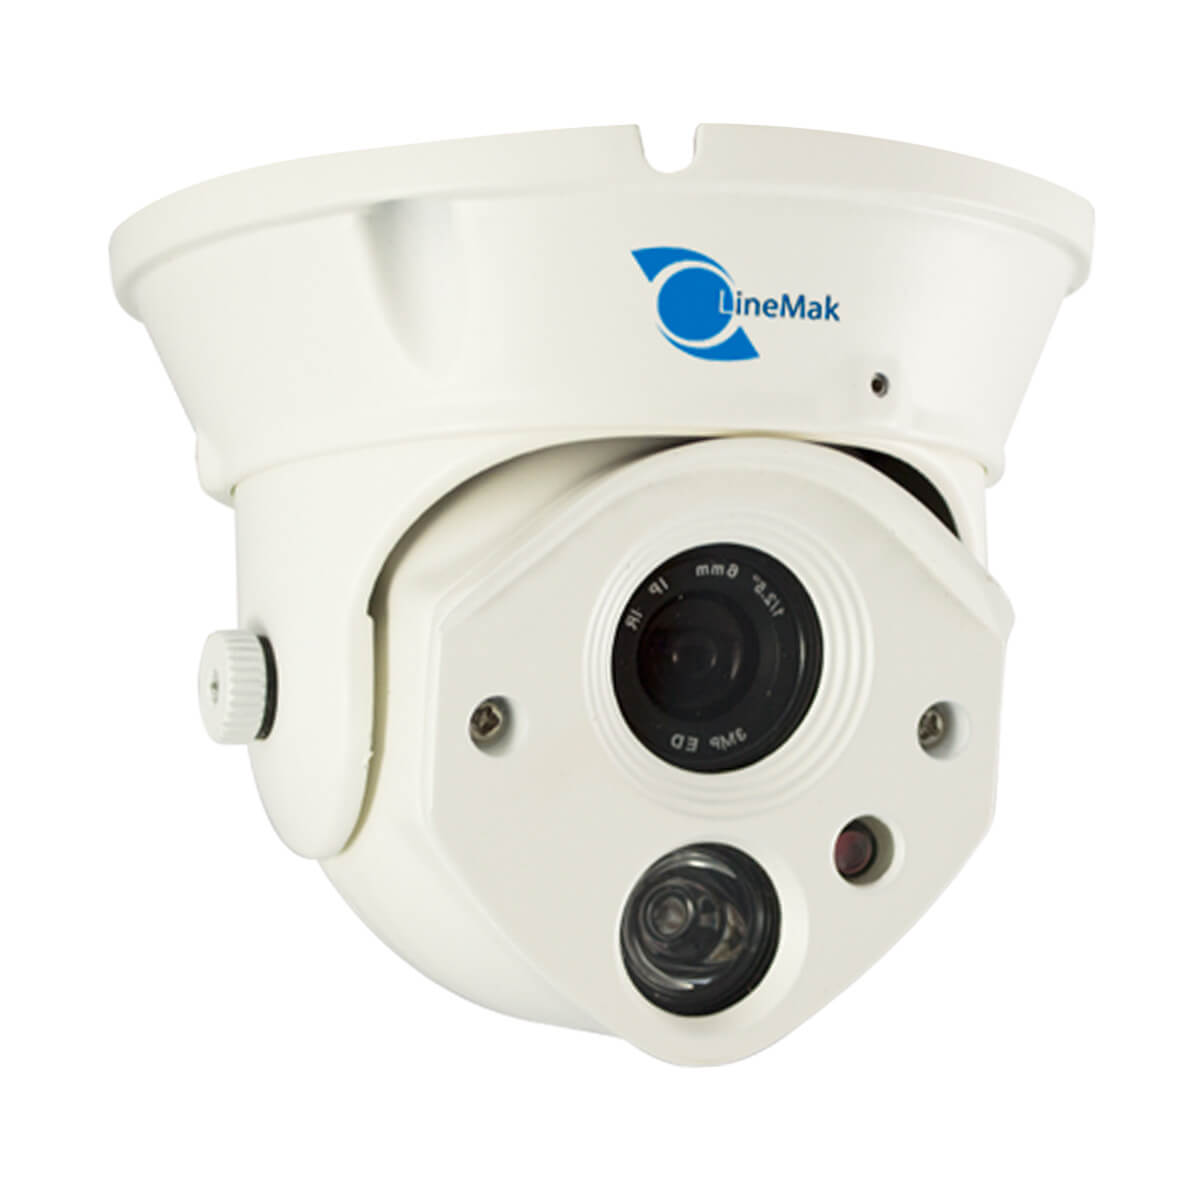 Vandalproof Dome camera, HDIS CMOS Sensor, 1200TVL, 6mm lens, 1 LED.